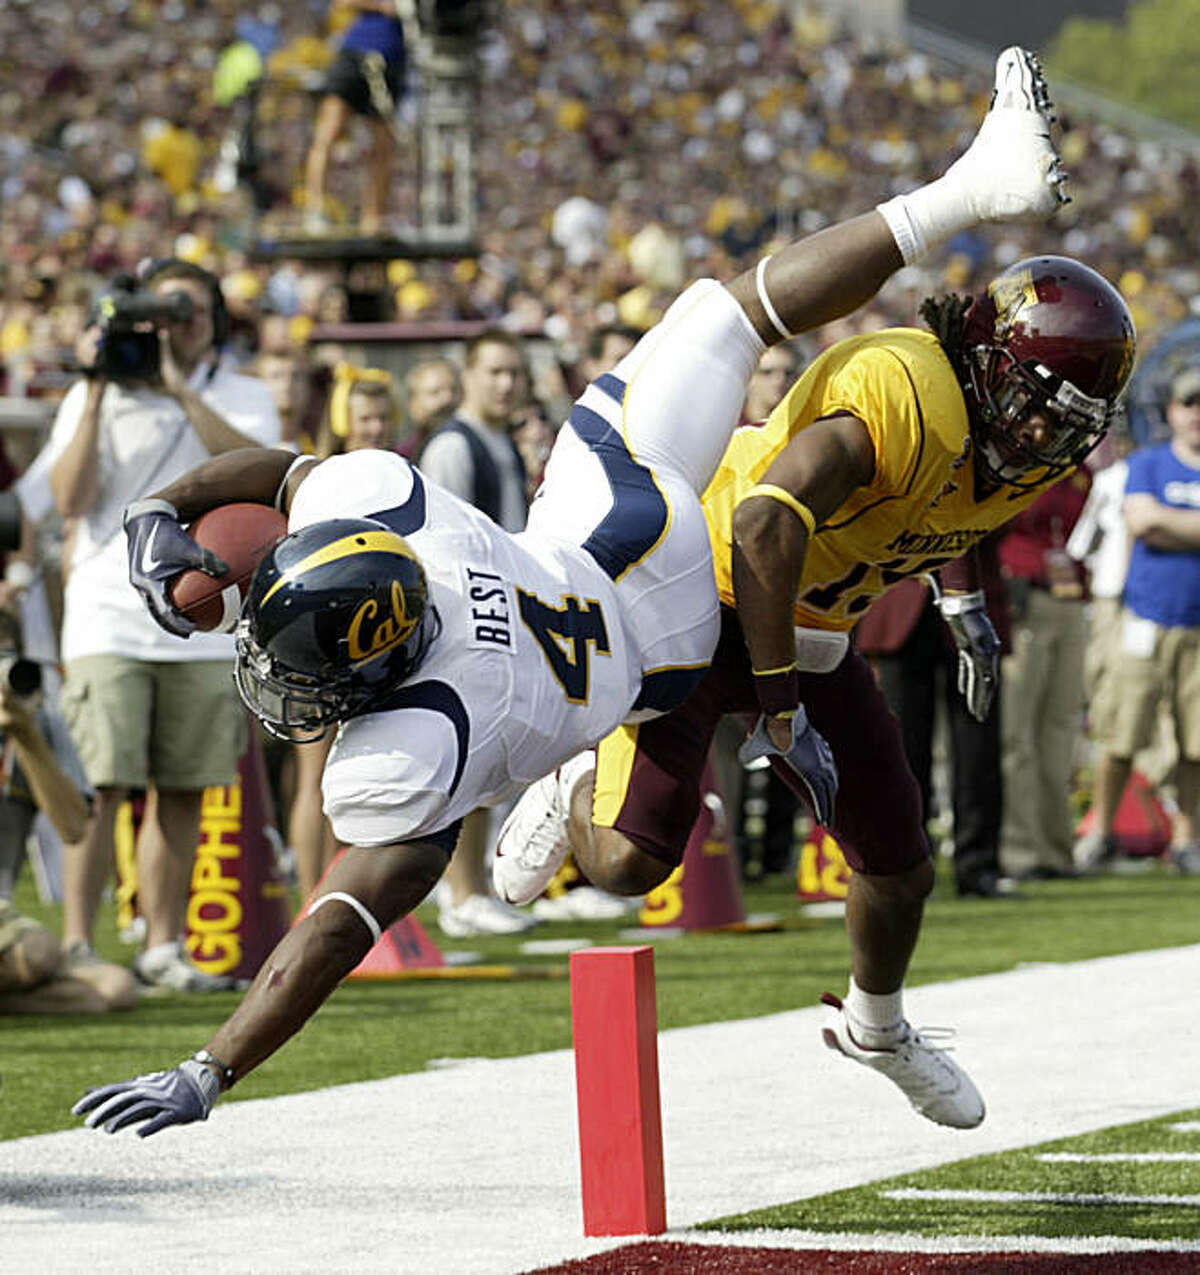 California tailback Jahvid Best (4) is upended at the goal by Minnesota cornerback Traye Simmons (15) as he scores on a 33-yard touchdown run during the first half of a NCAA football game, Saturday, Sept. 19, 2009 in Minneapolis. (AP Photo/Paul Battaglia)